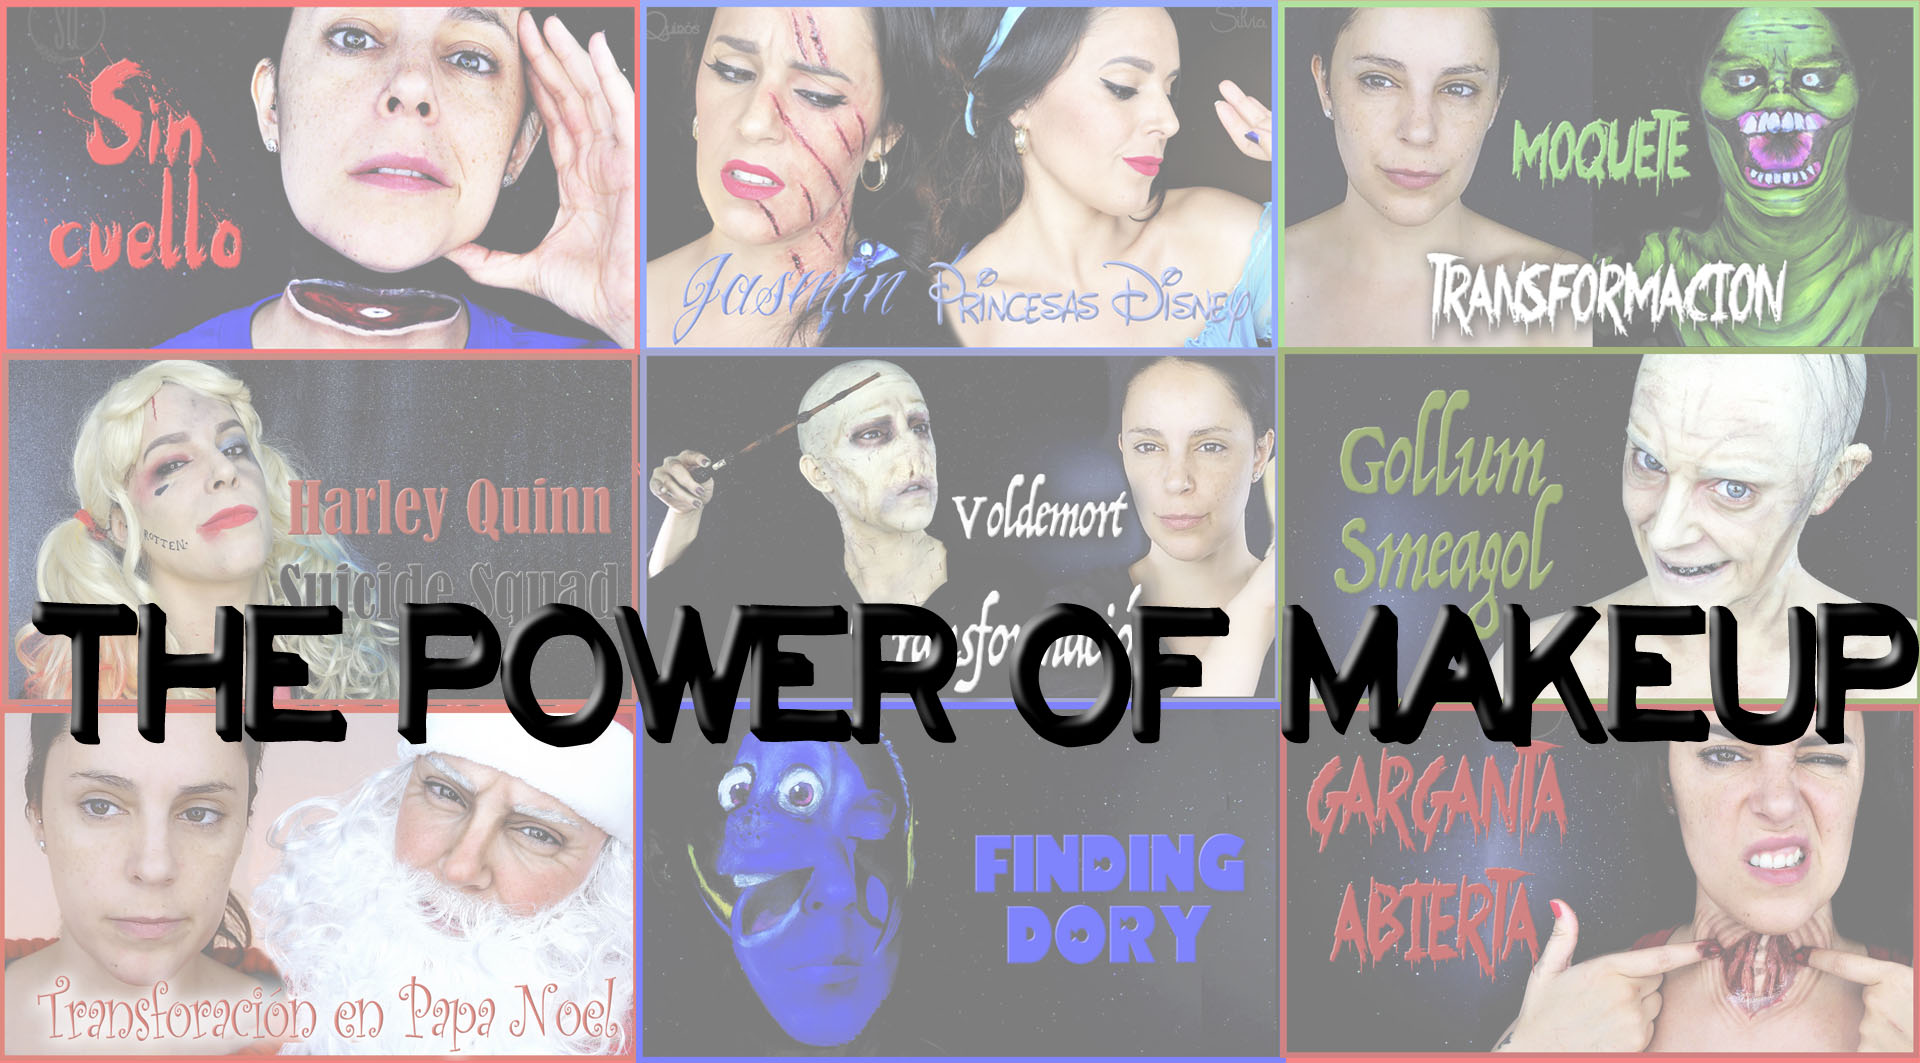 The power of makeup, is in your hands, 2016 FX makeup